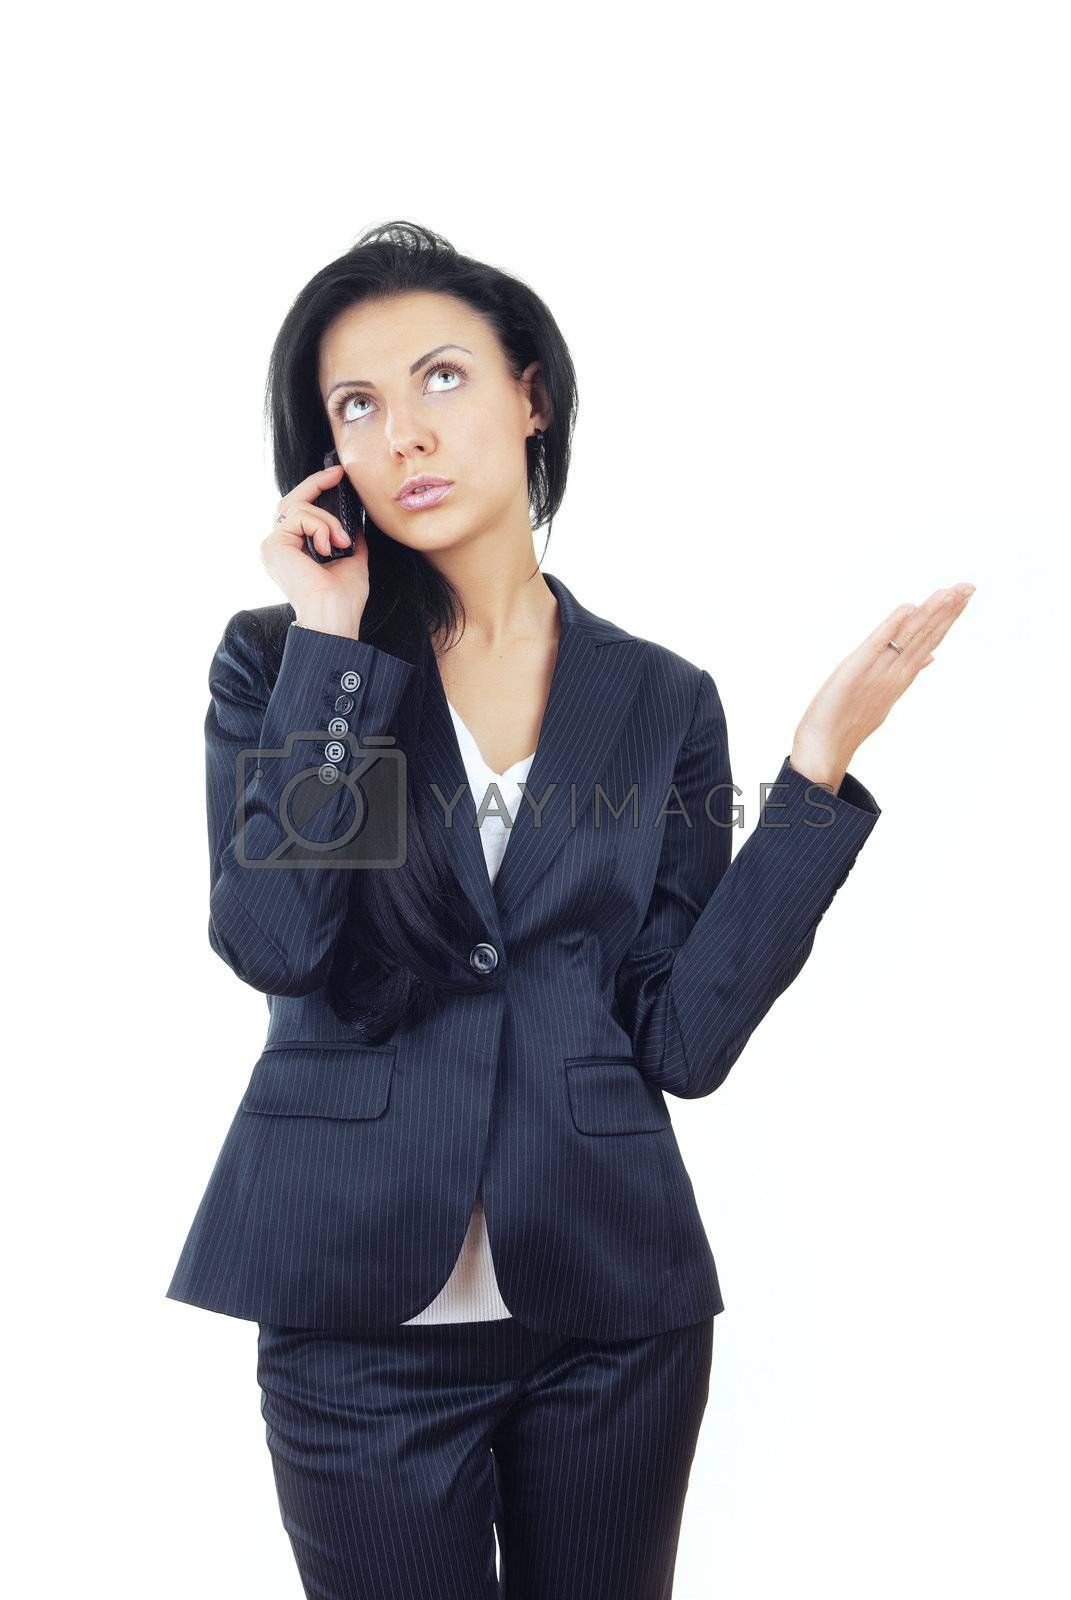 Businesswoman talking via cell phone on a white background